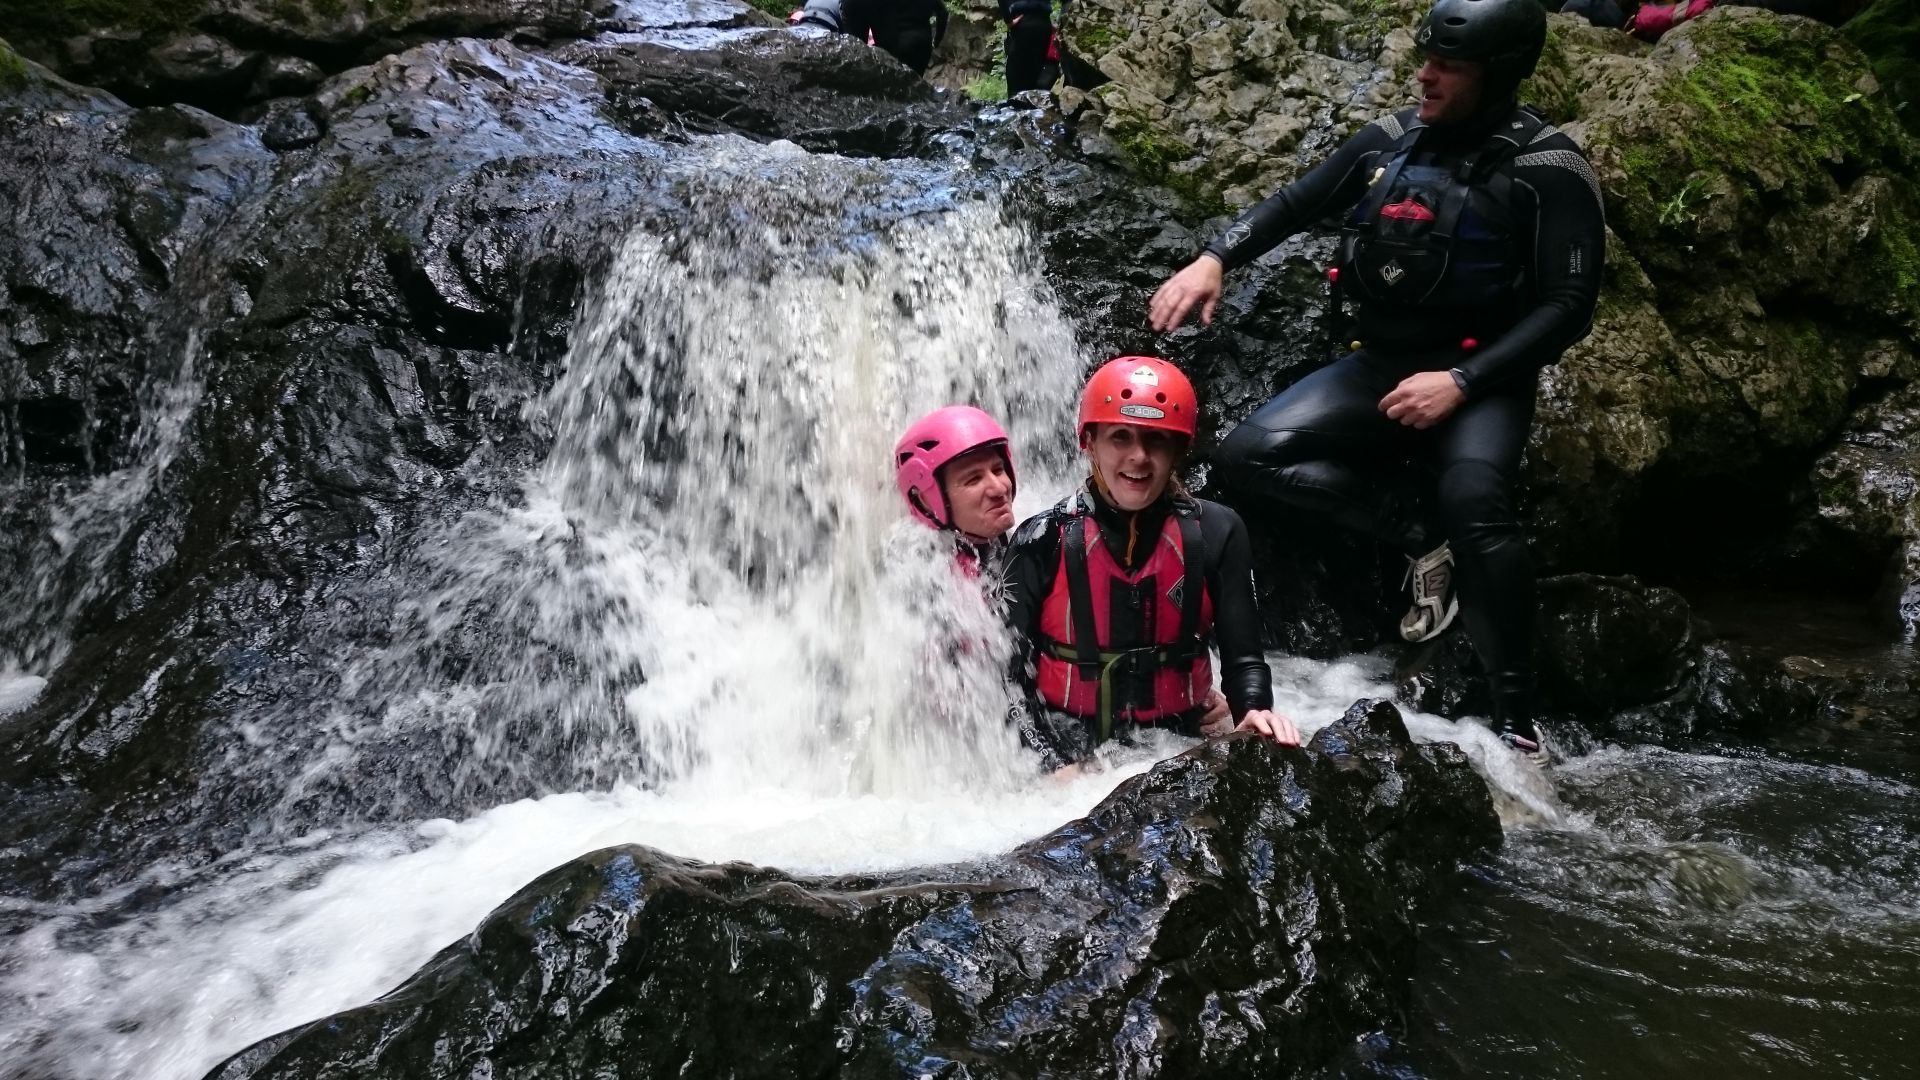 Getting wet at timotei in the Sychryd gorge